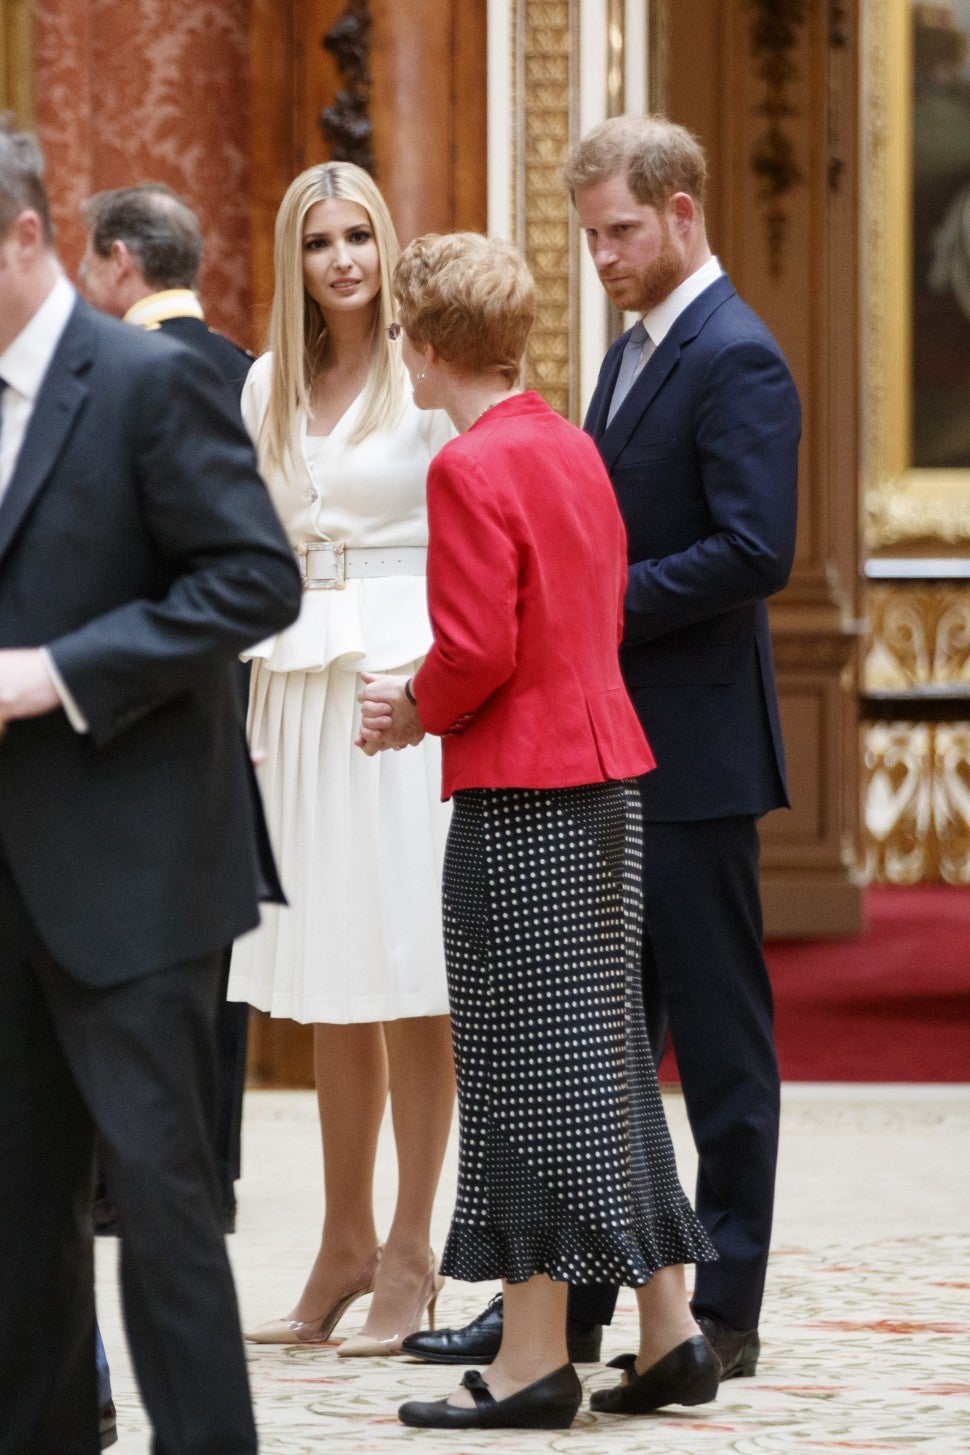 Ivanka Trump, daughter of US President Donald Trump, and Britain's Prince Harry, Duke of Sussex, view displays of US items of the Royal Collection at Buckingham Palace in central London on June 3, 2019